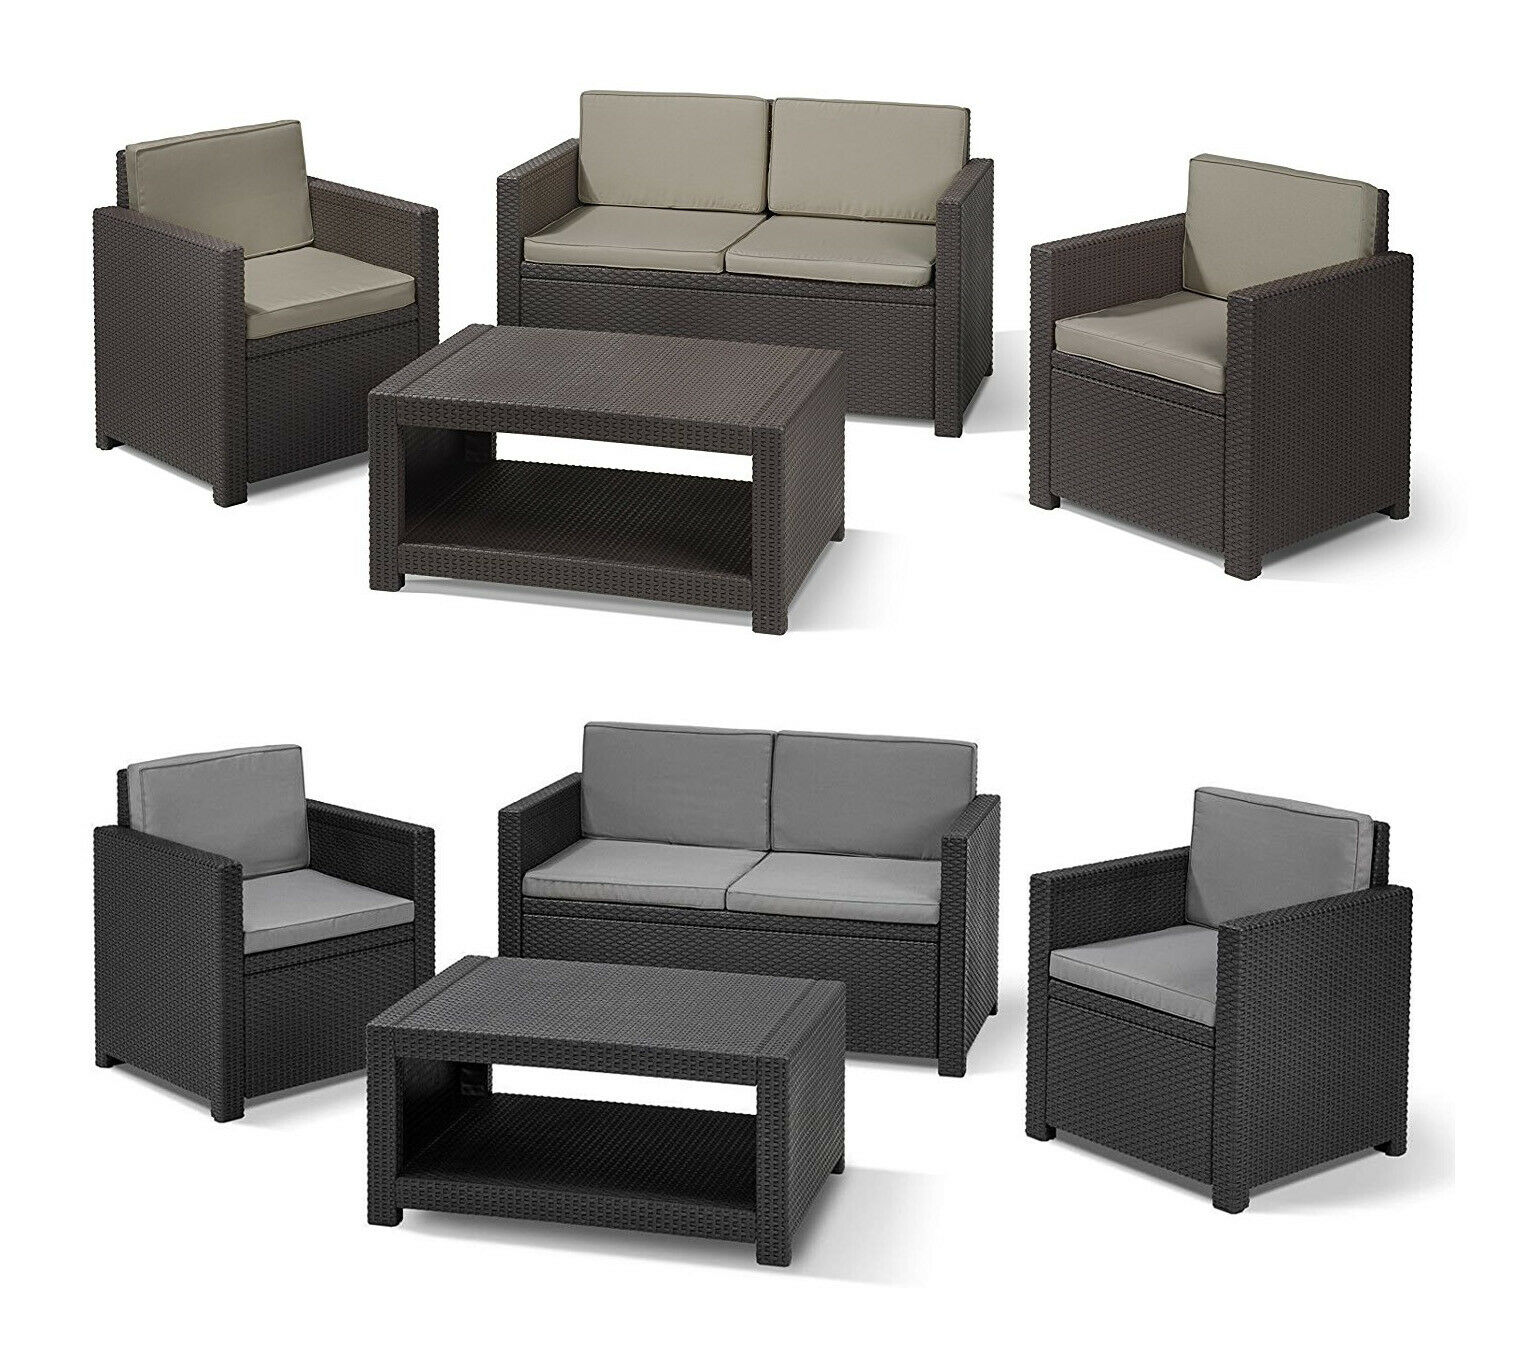 allibert monaco gartenm bel loungeset sitzgruppe m bel m belset terassenm bel eur 299 00. Black Bedroom Furniture Sets. Home Design Ideas